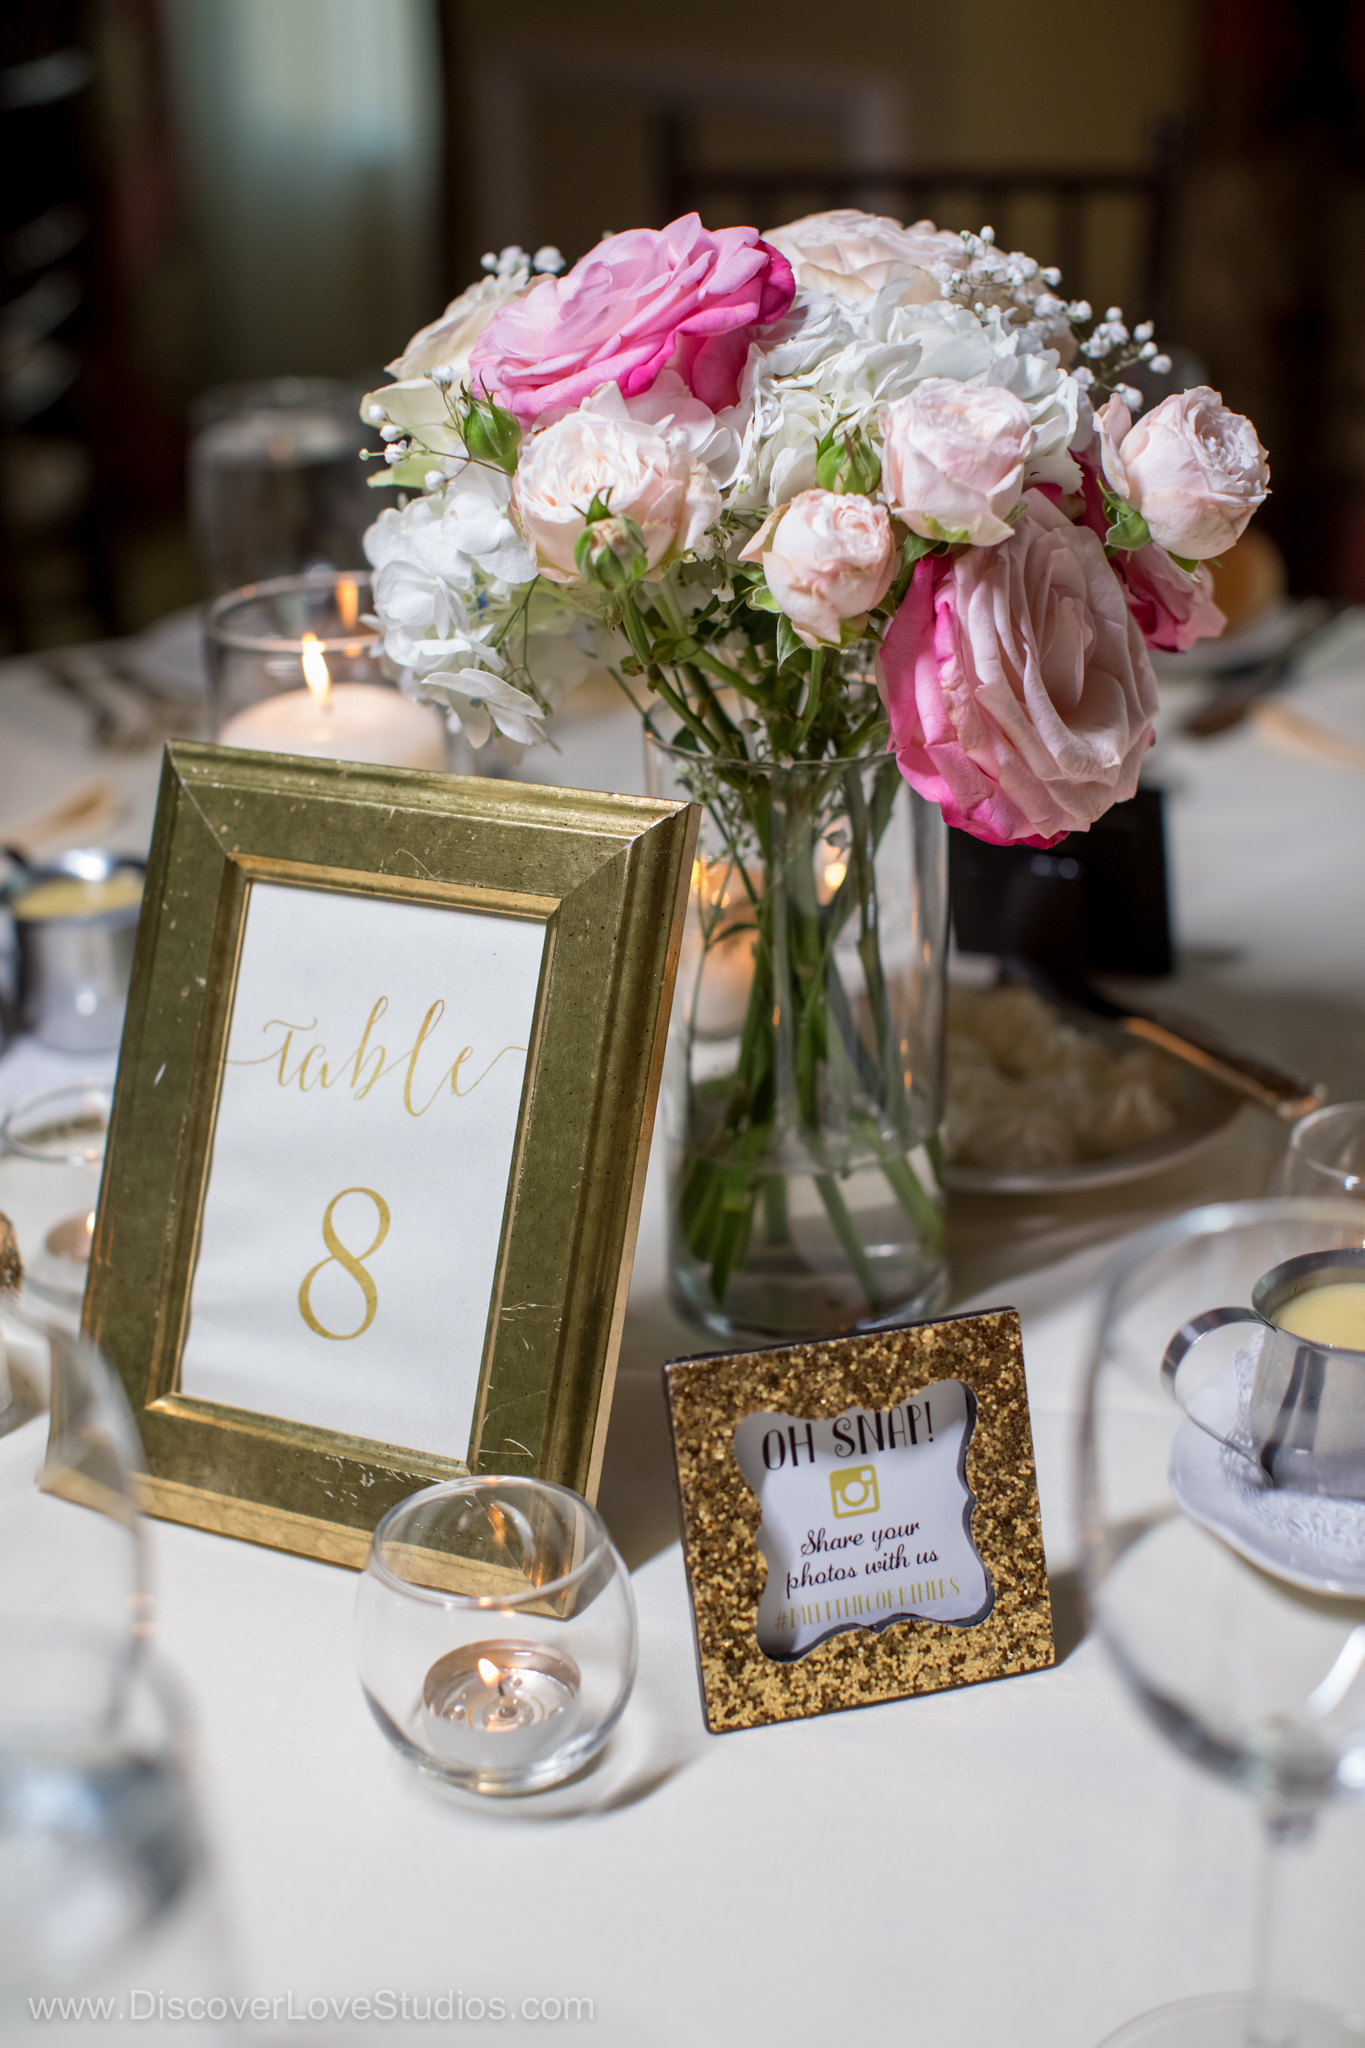 wedding table numbers with floral centerpiece